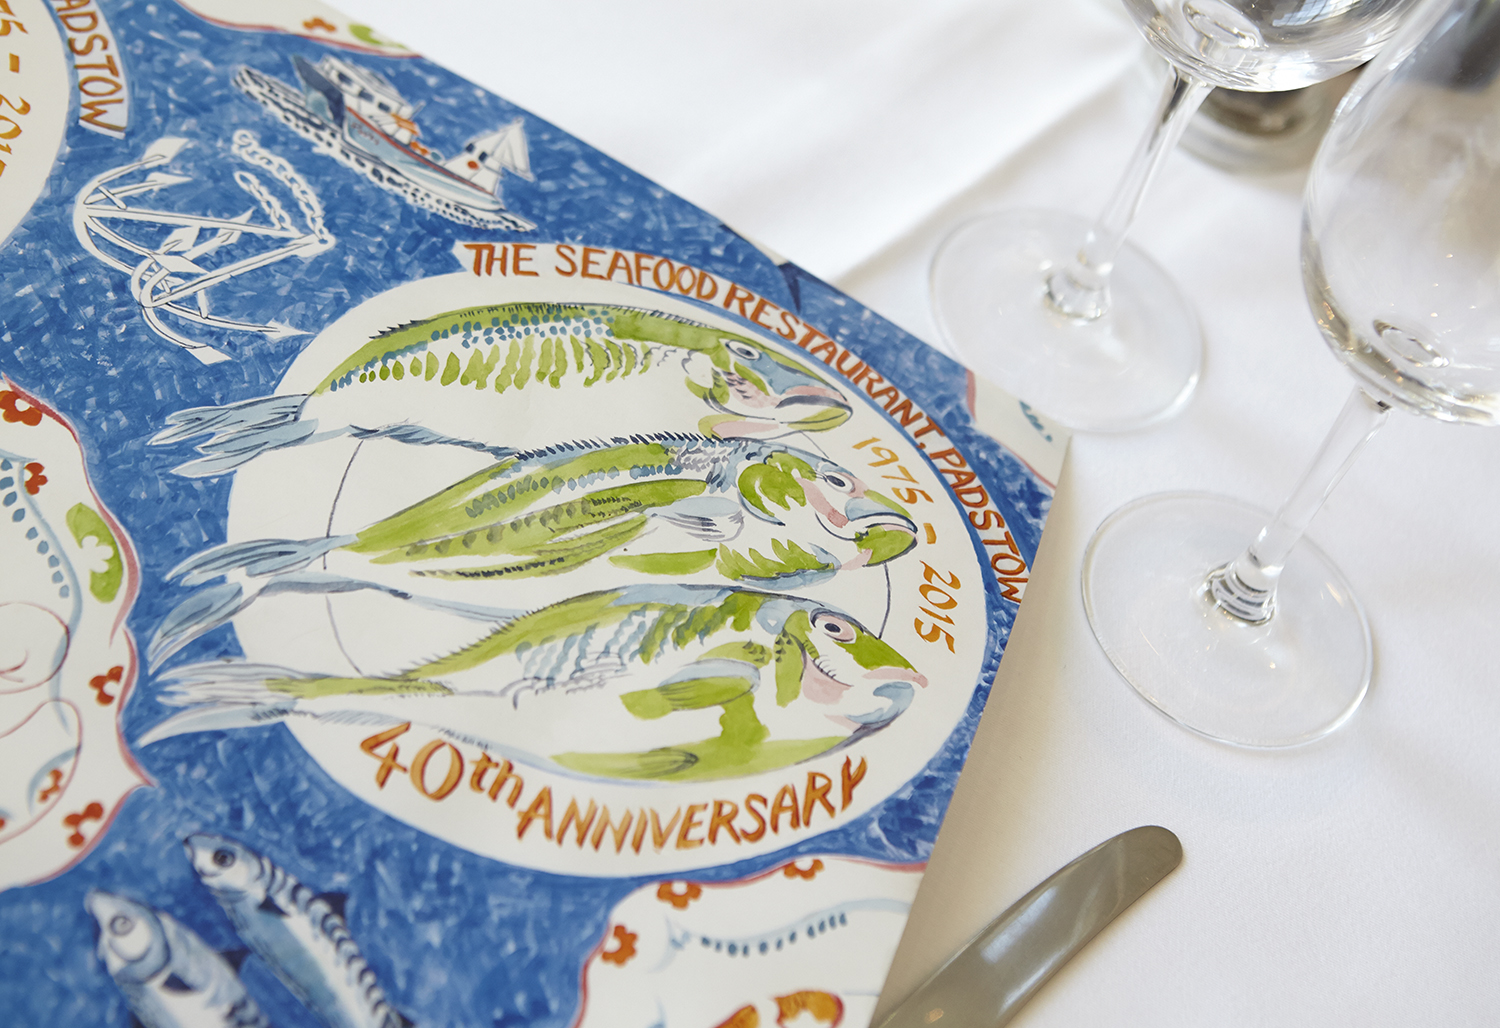 Rick Stein & The Seafood Restaurant 40th Anniversary feature in Delicious magazine